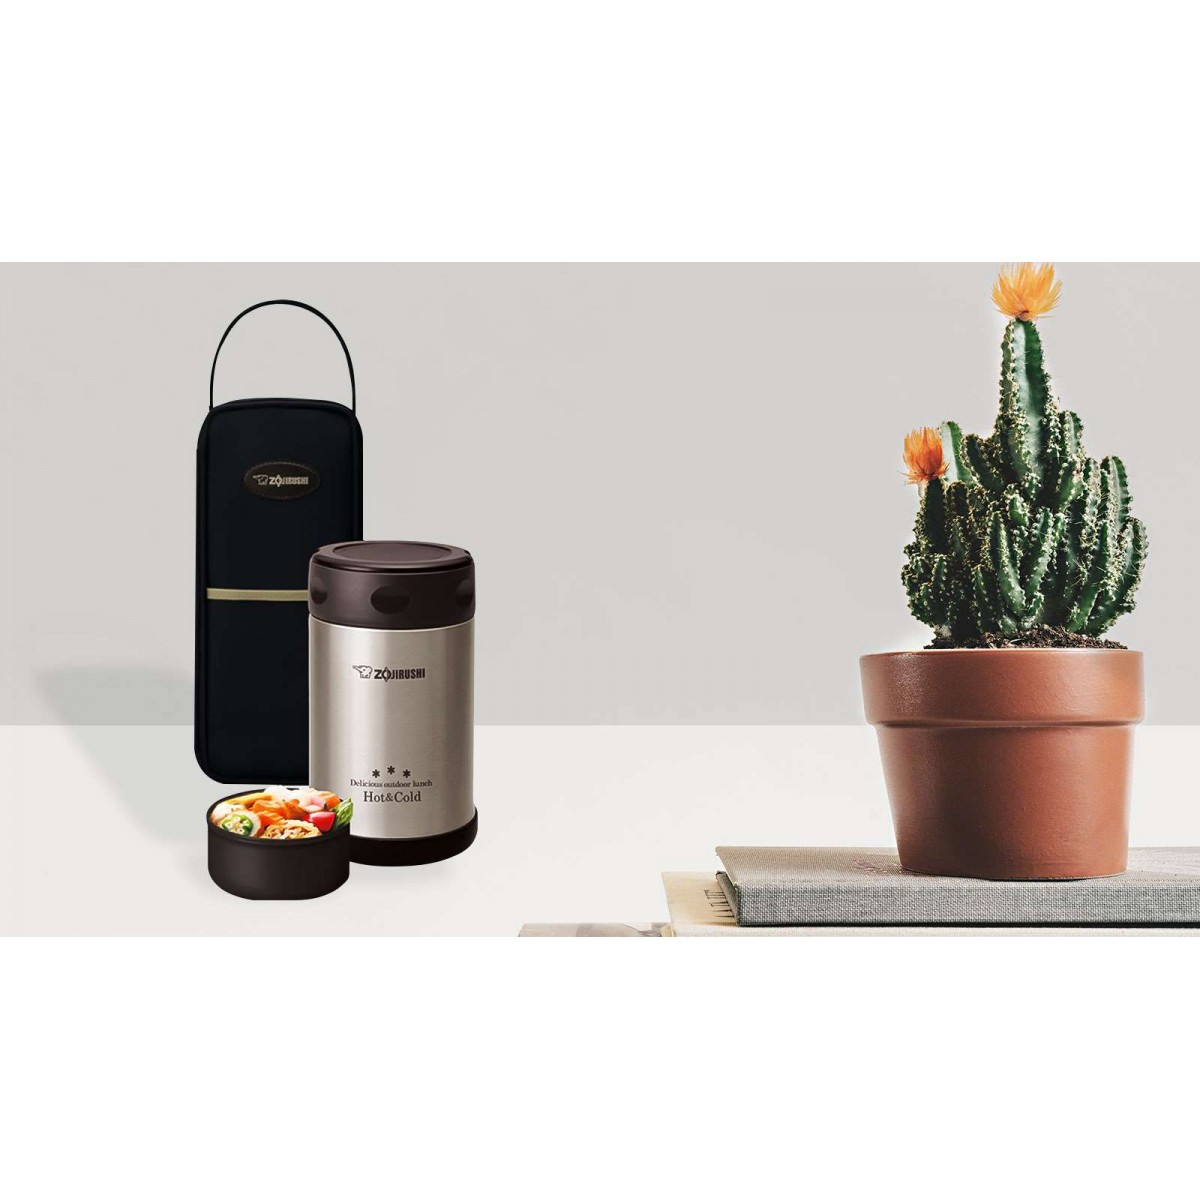 Zojirushi Stainless Steel Food Jar with Bag 17oz. / 0.5L [STOCK CLEARANCE]